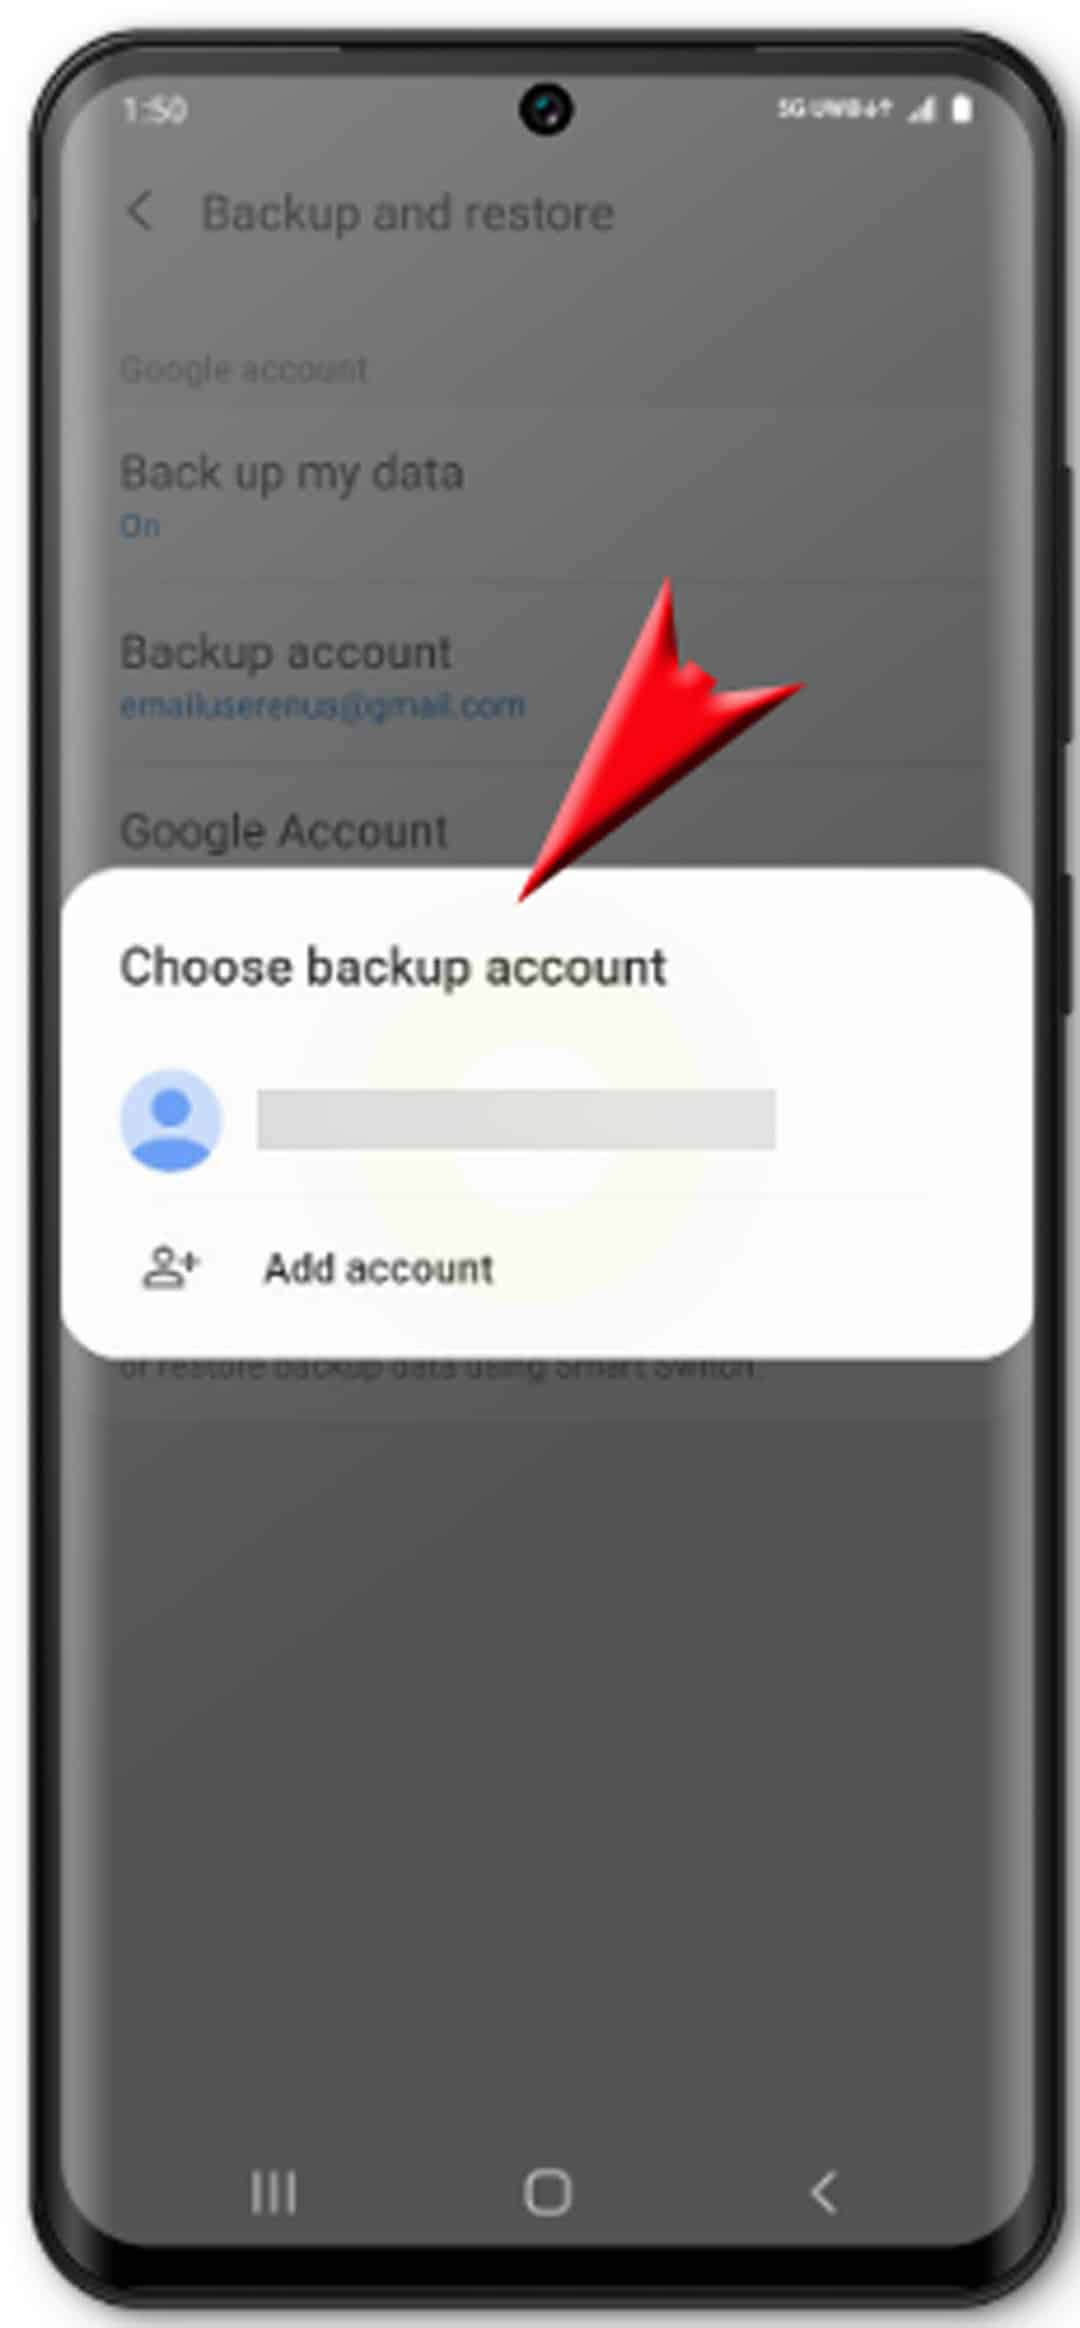 back up and restore galaxy s20 - select account to backup